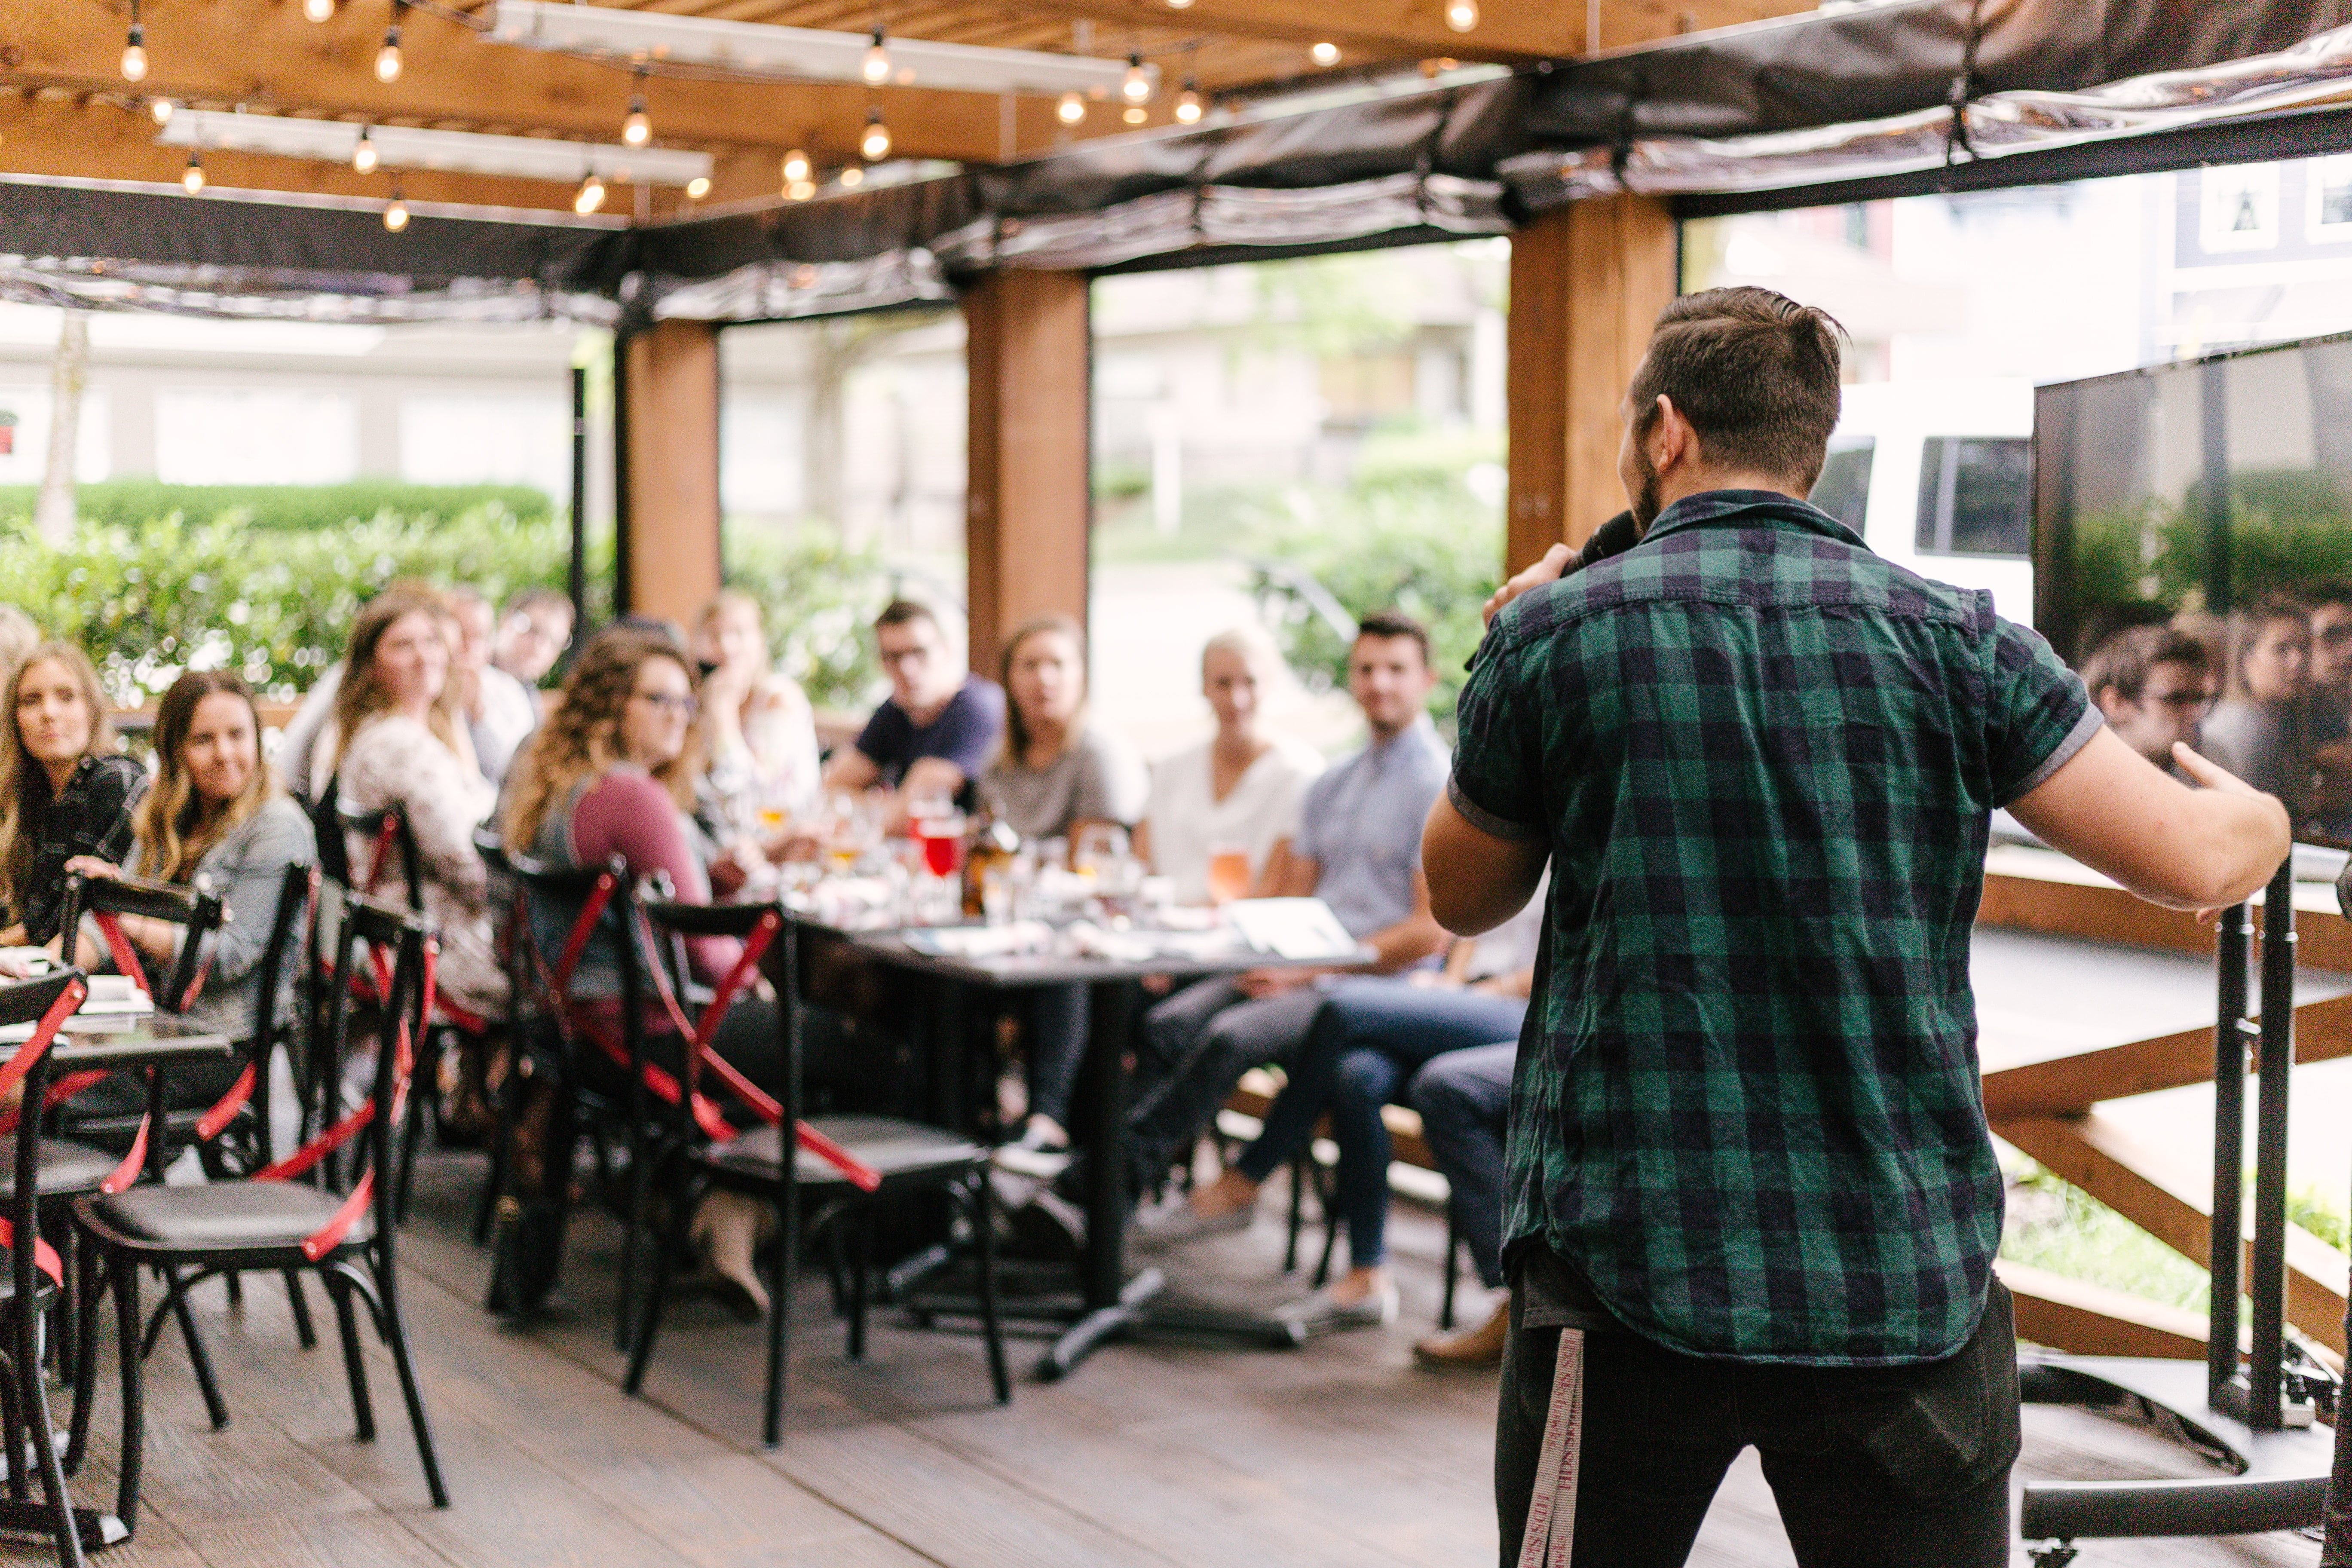 7 Simple Steps To Hosting A Successful Event